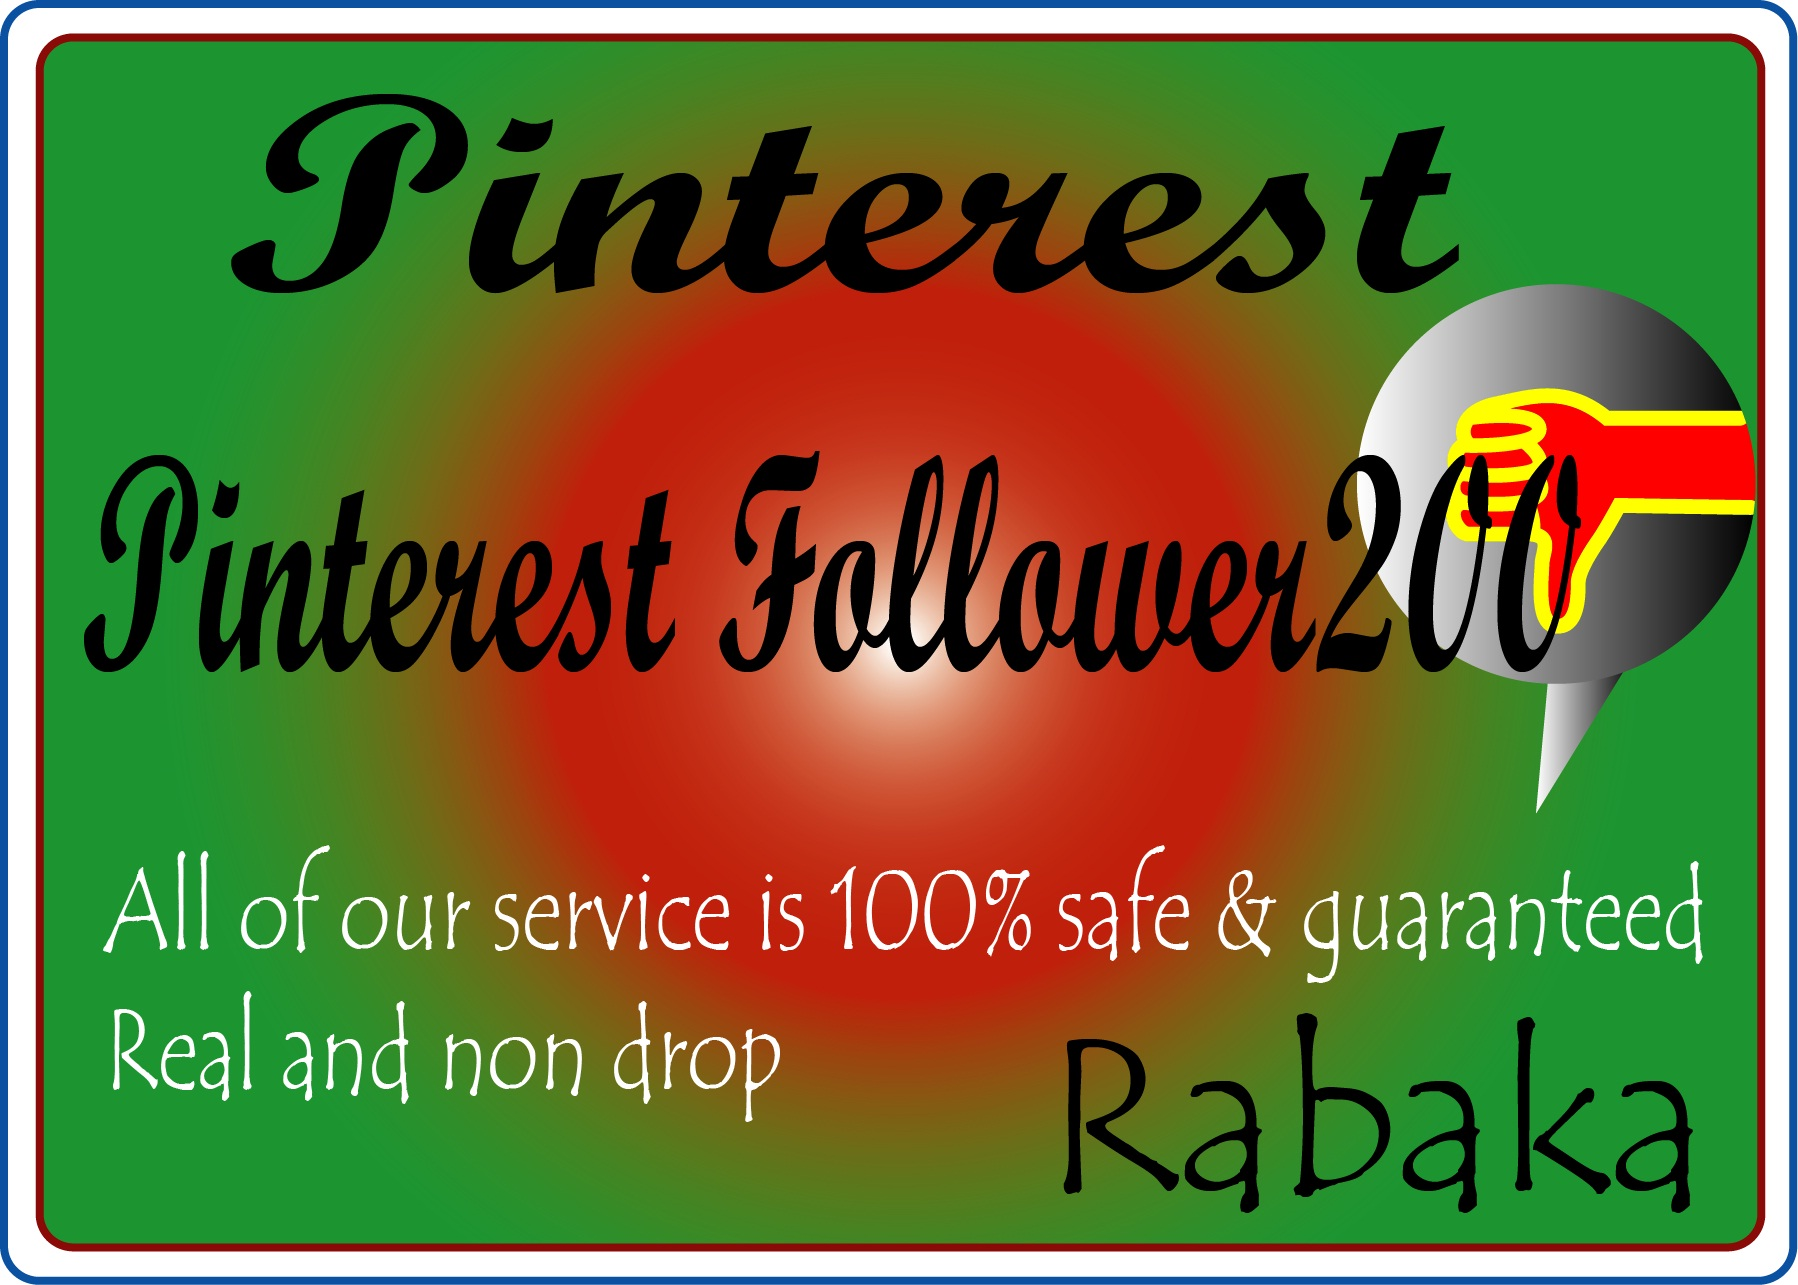 get real and non drop 340 pinterest followers high qu...